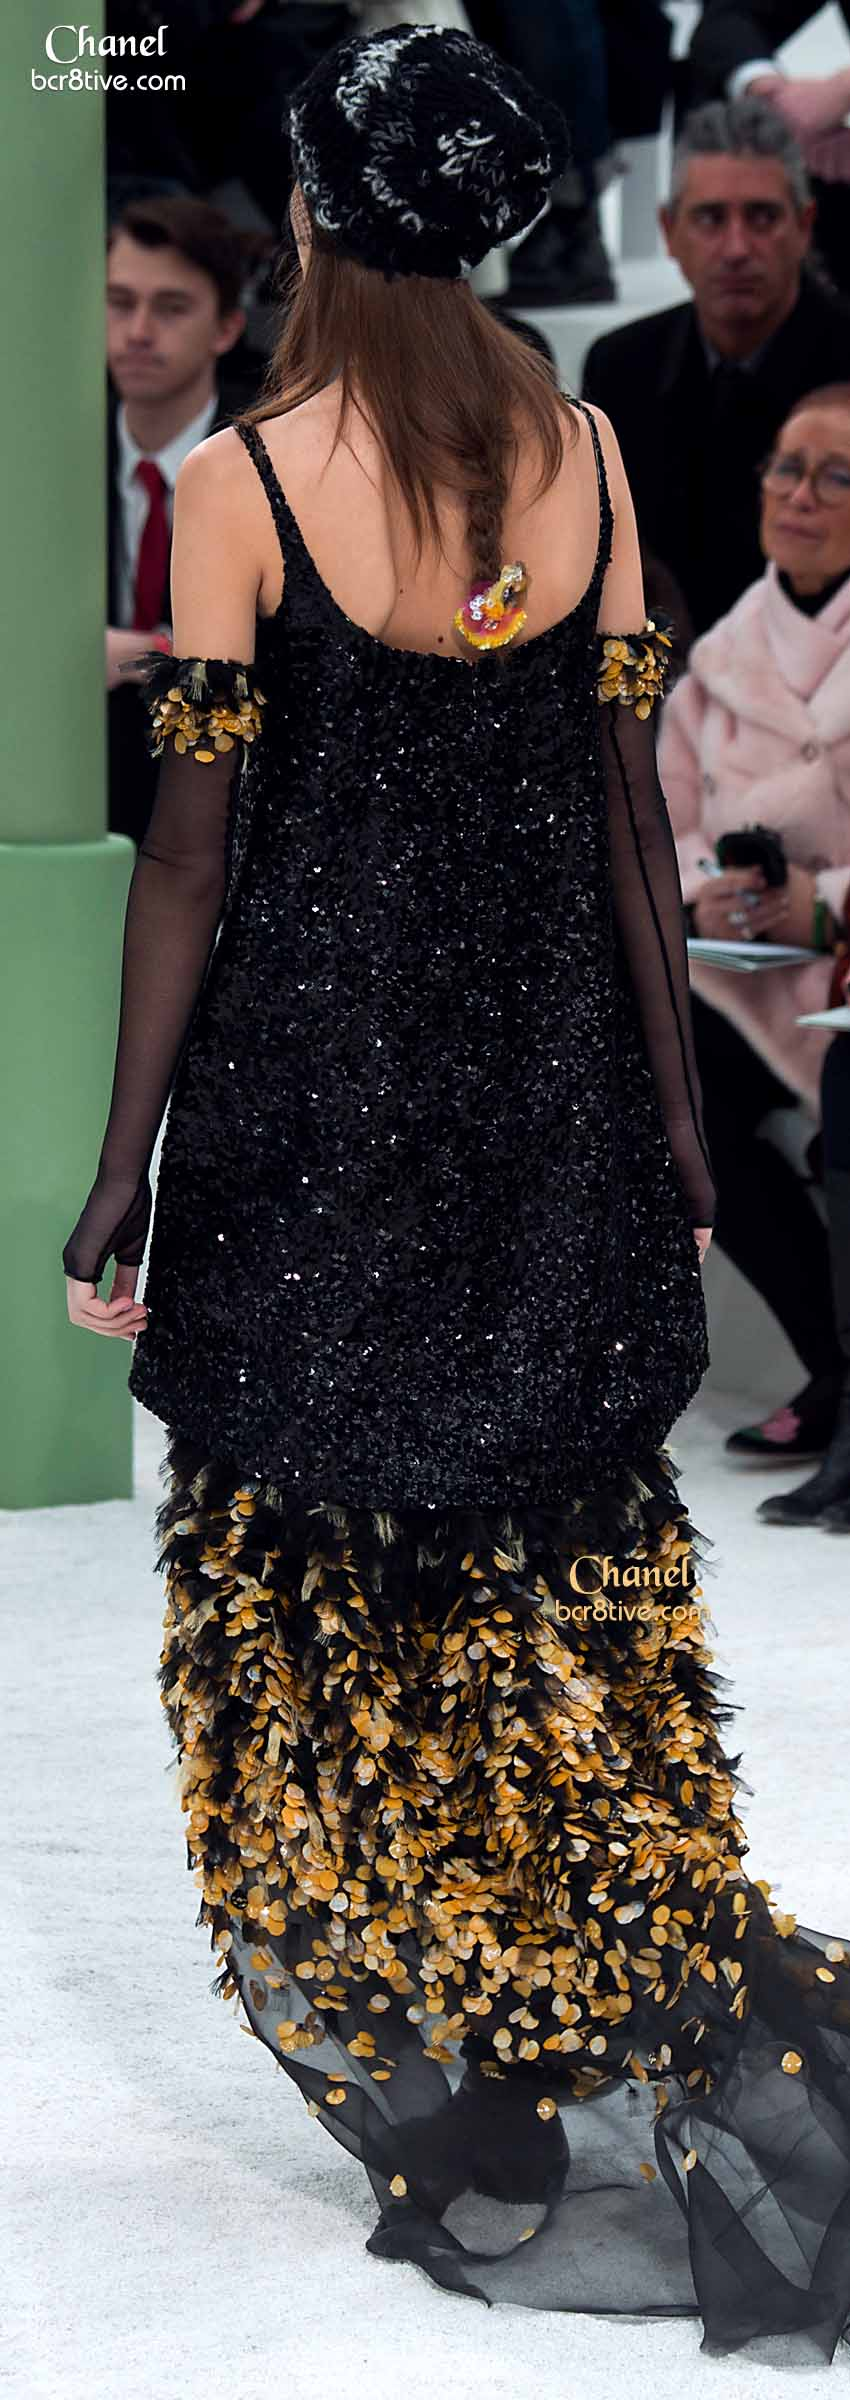 Black Appliqued Gown & Sequined Top